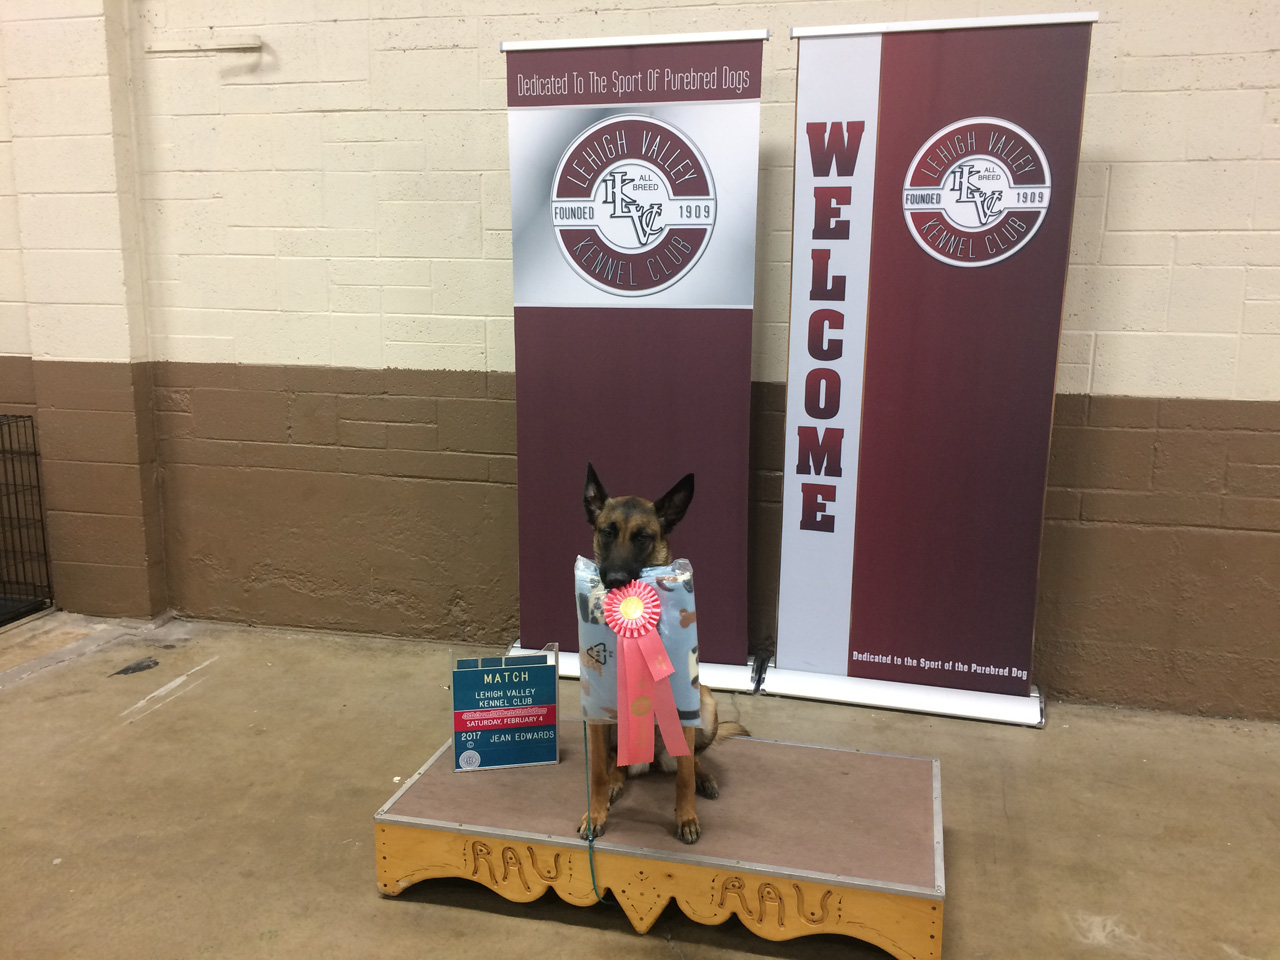 German Sheppard holding awards